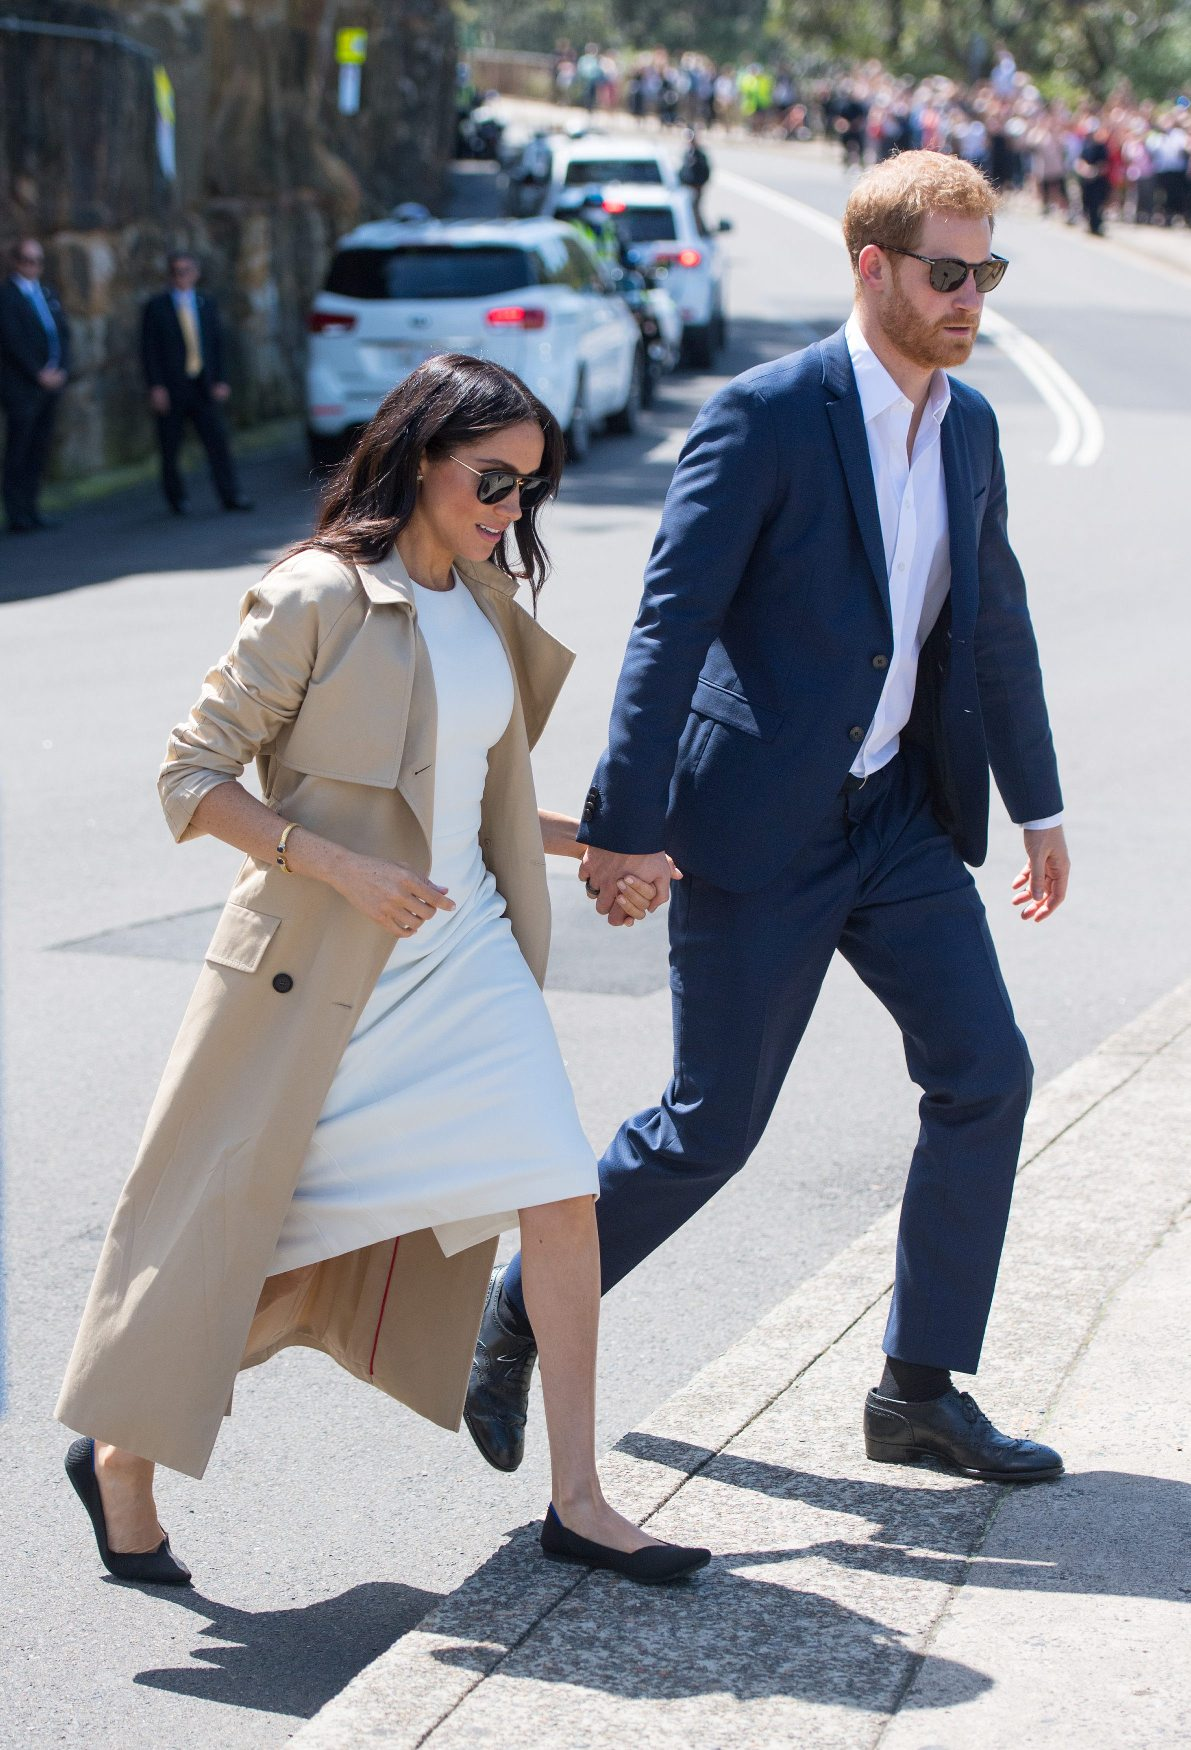 The Duke and Duchess of Sussex depart following a visit to Taronga Zoo in Sydney on the first day of the Royal couple's visit to Australia Tuesday October 16, 2018.  Dominic Lipinski/Pool via REUTERS